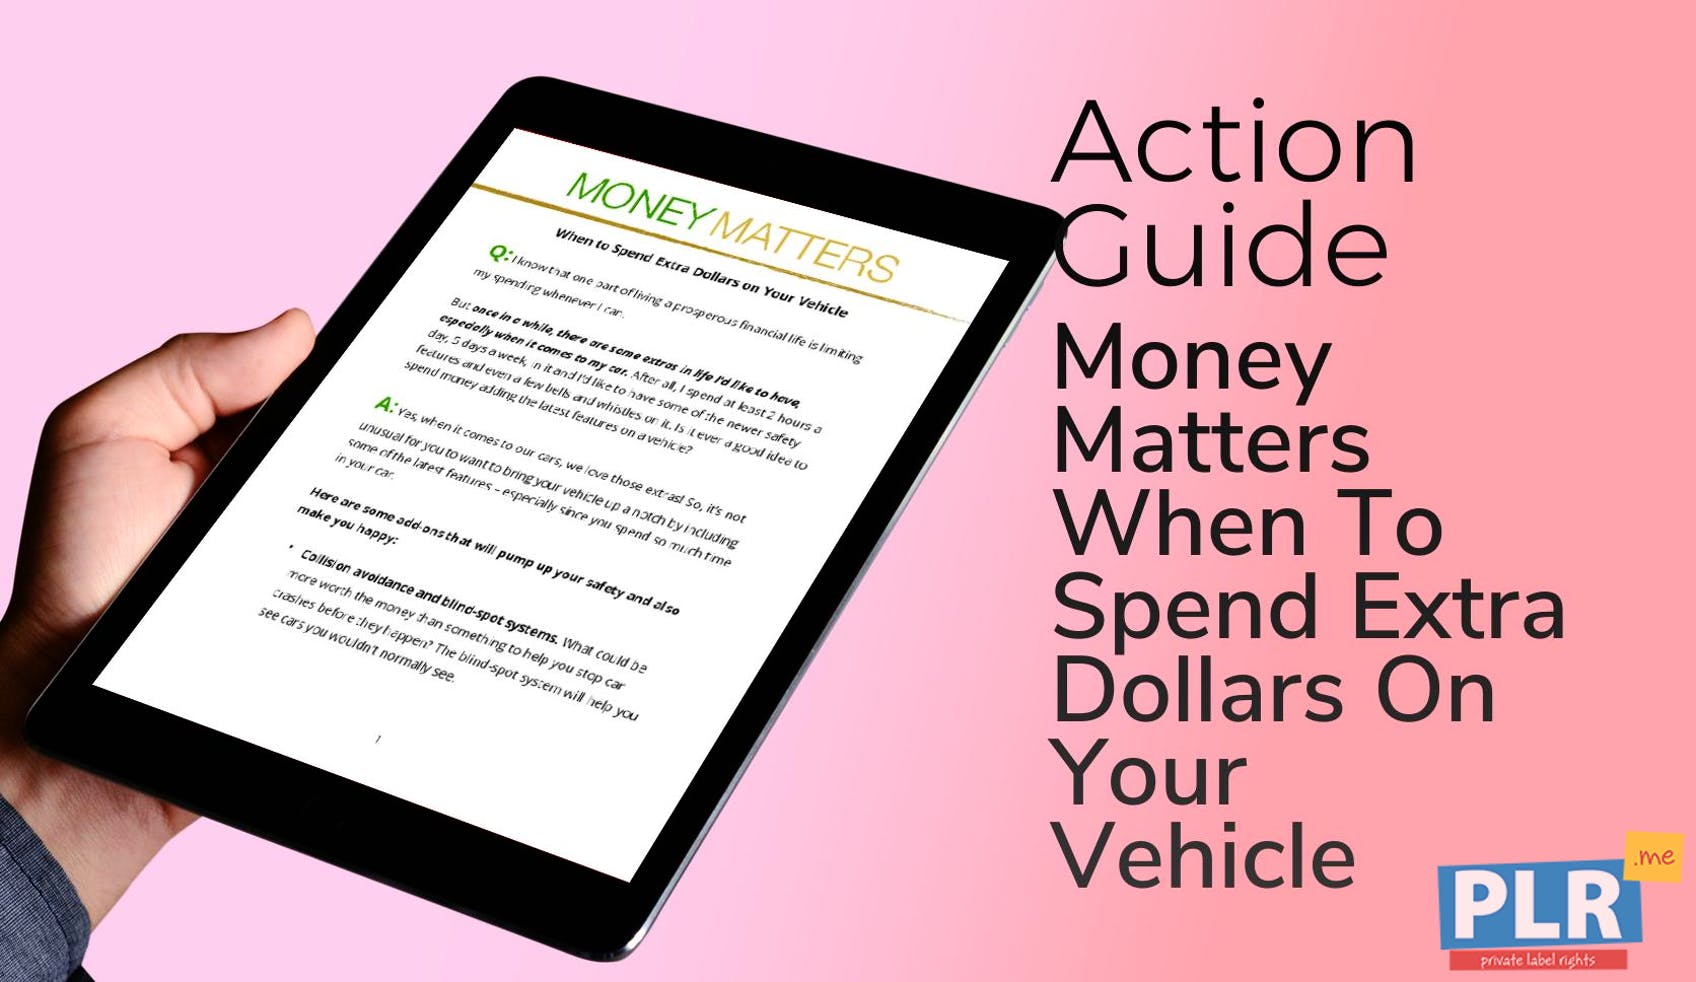 Money Matters When To Spend Extra Dollars On Your Vehicle